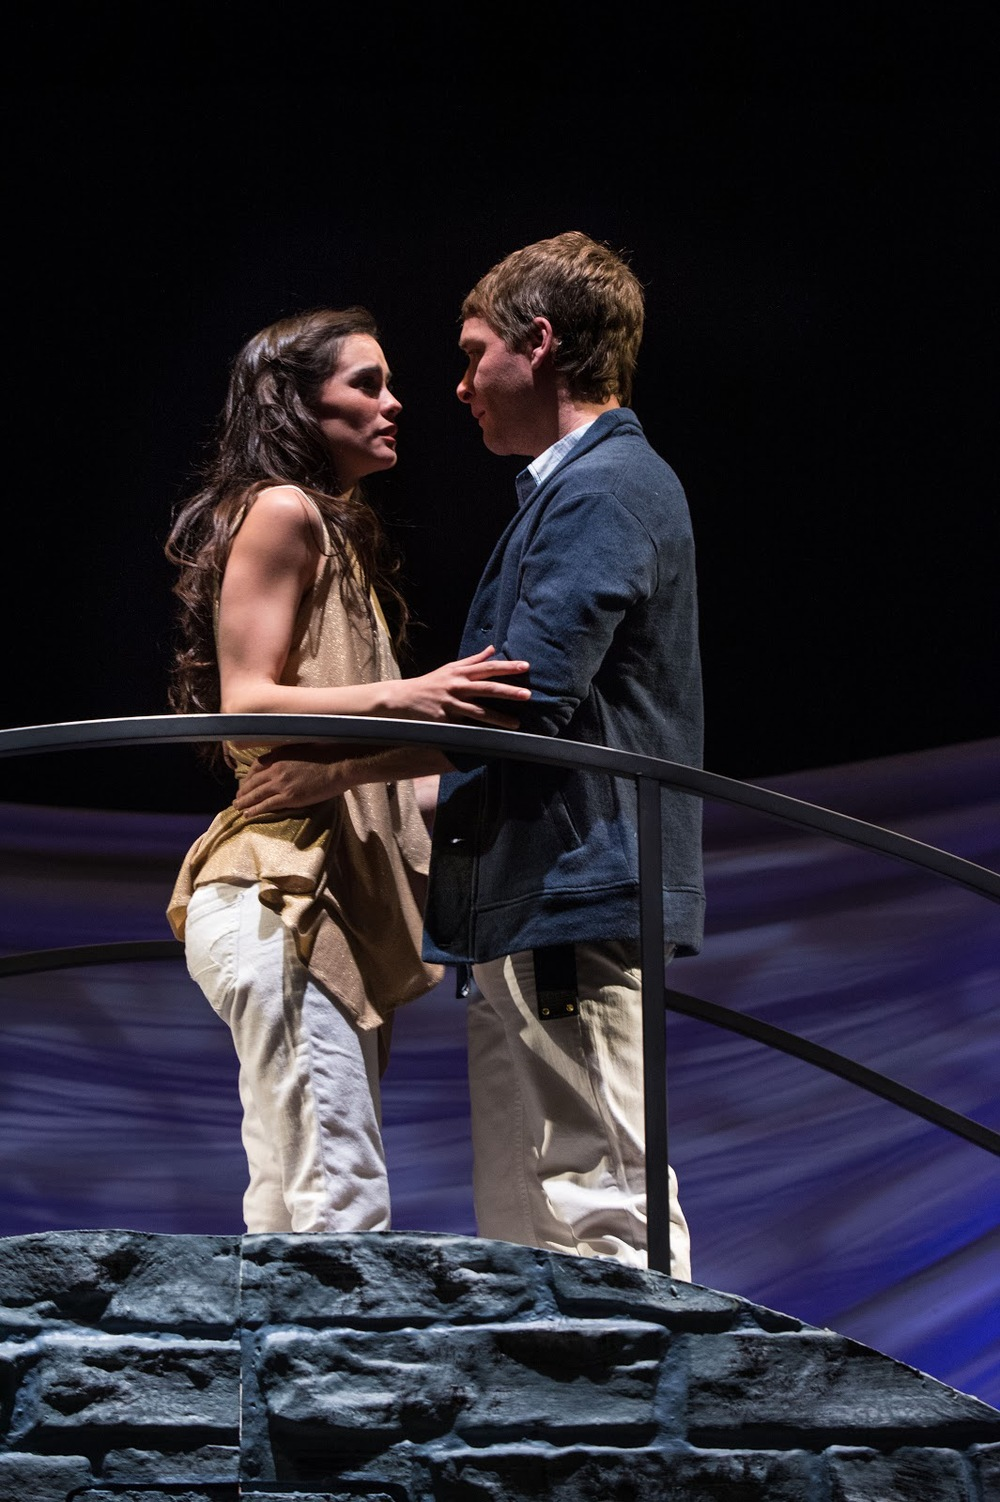 Melisa Pereyra (left) as Juliet and Chris Klopatek as Romeo in the Utah Shakespeare Festival's Romeo and Juliet.